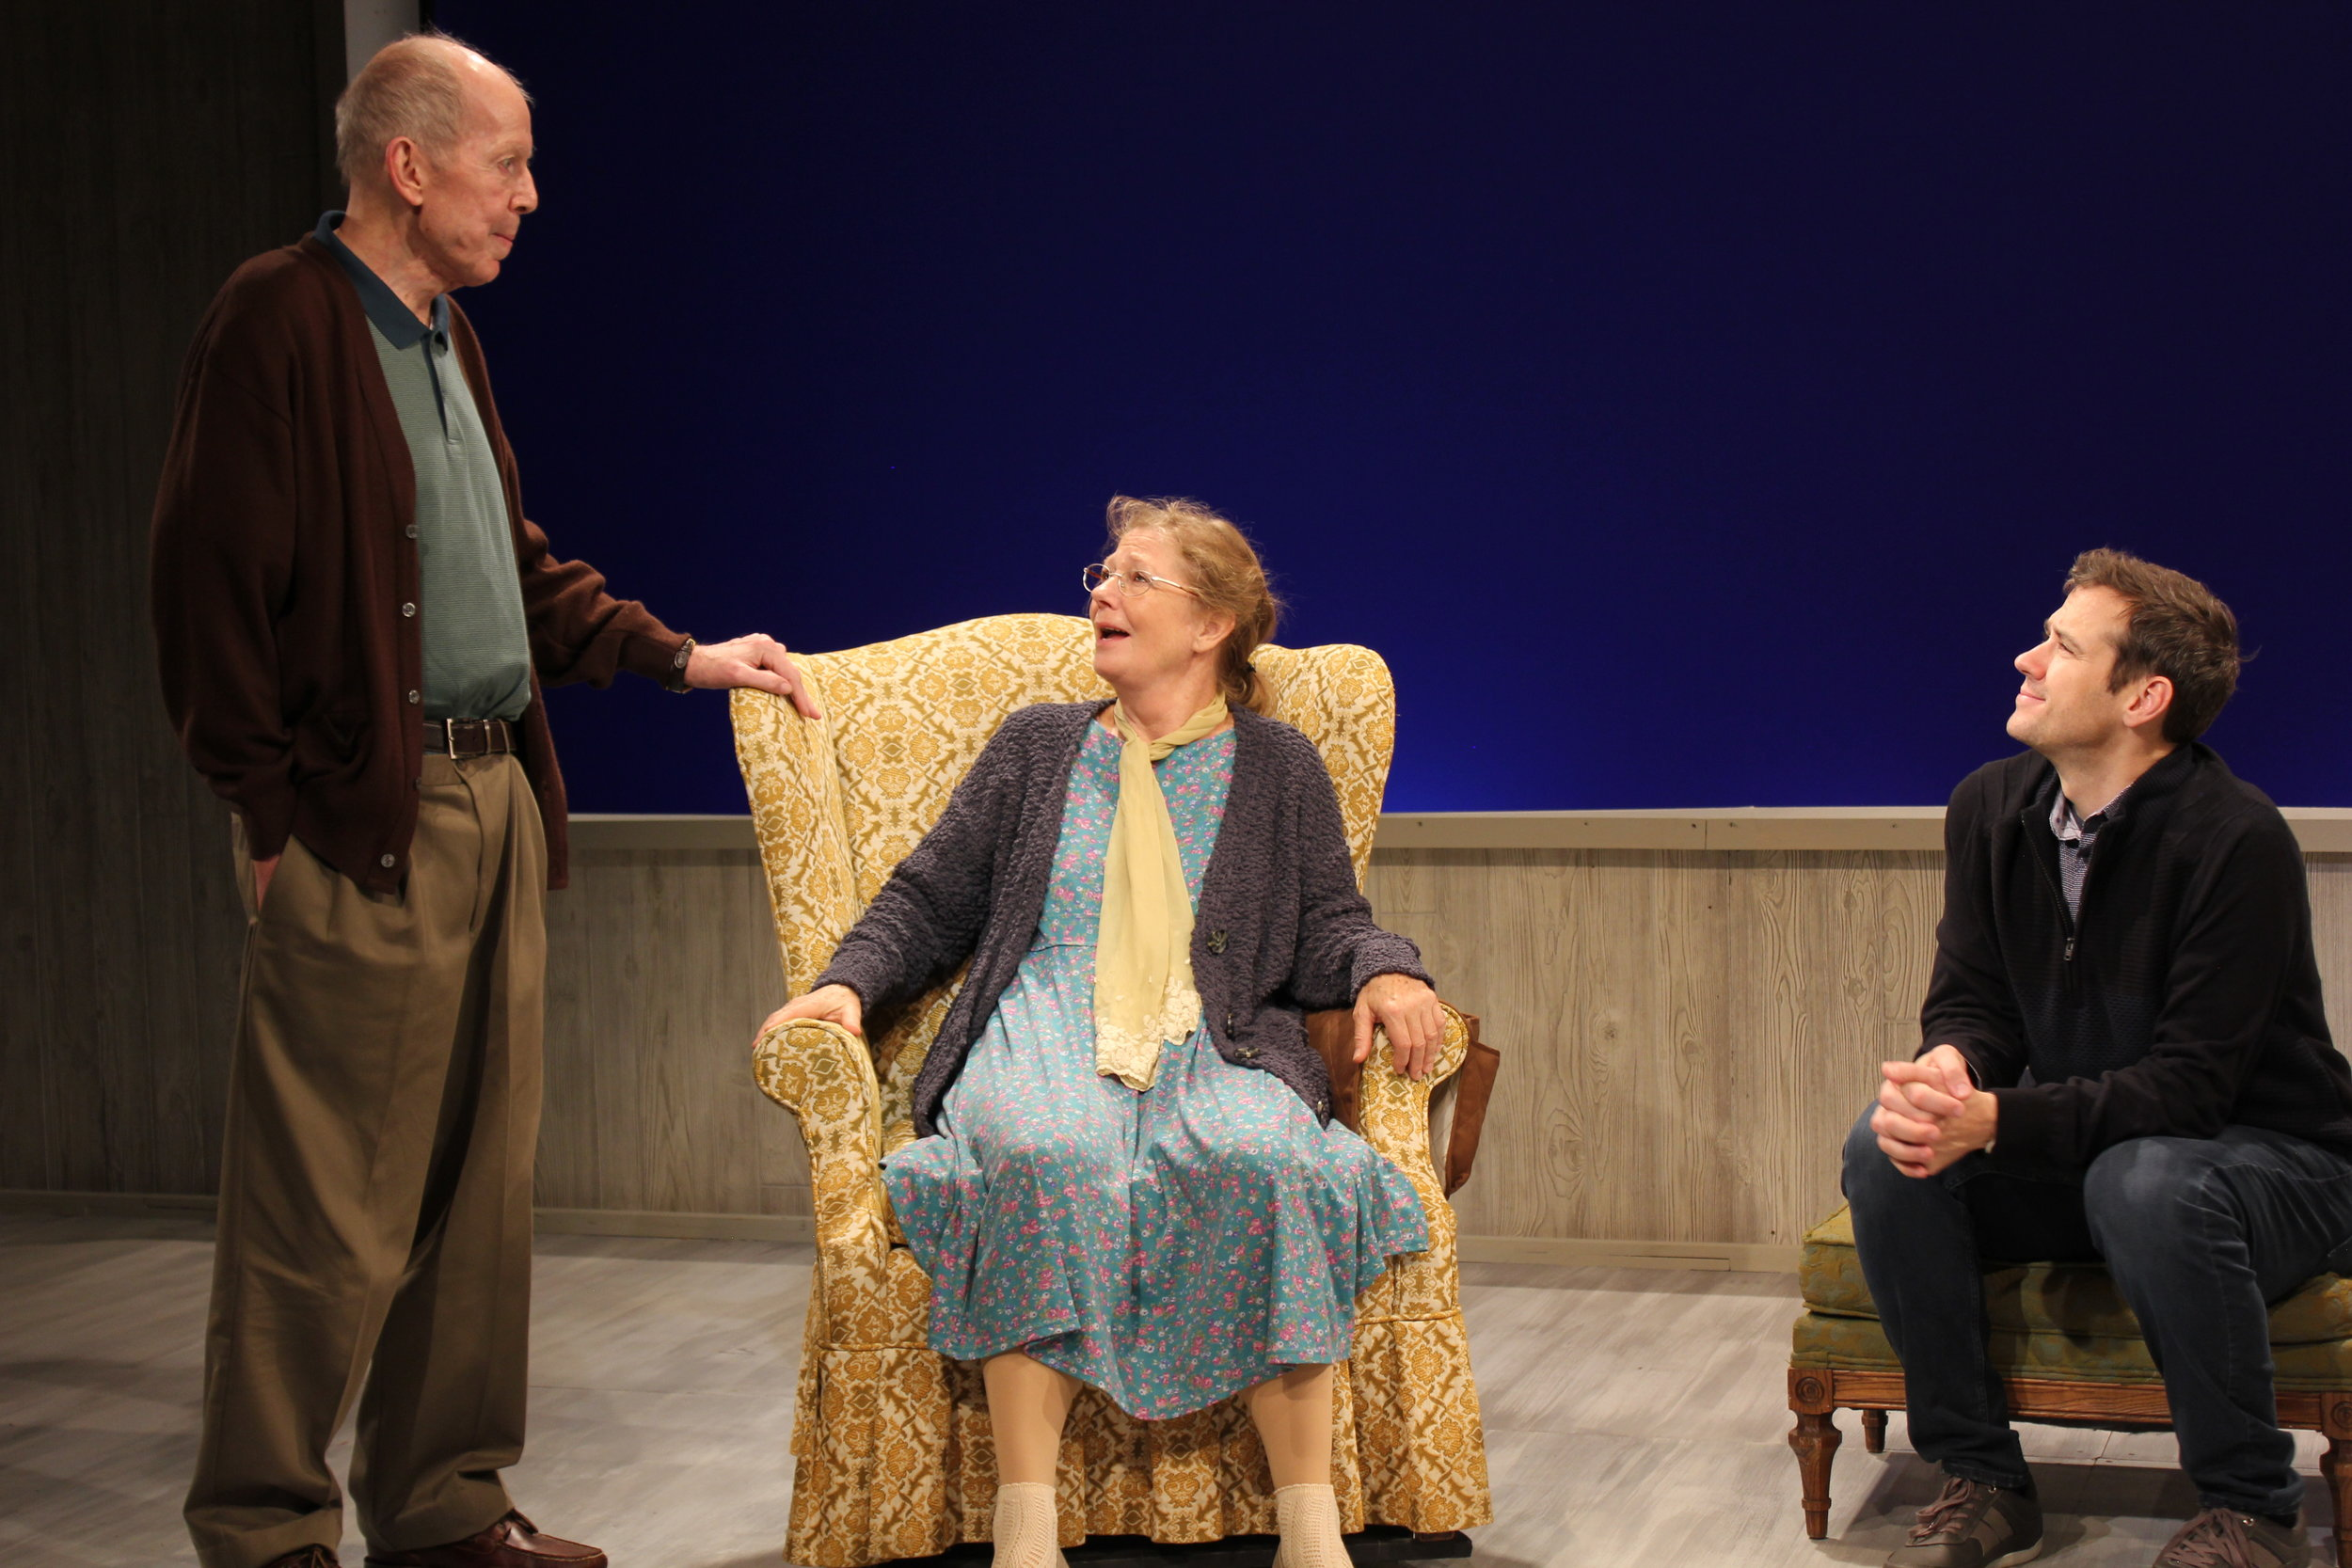 Pictured: Jonathan Hogan, Deborah Hedwall, and Richard Gallagher.  Photo: Skylight Productions Theater.